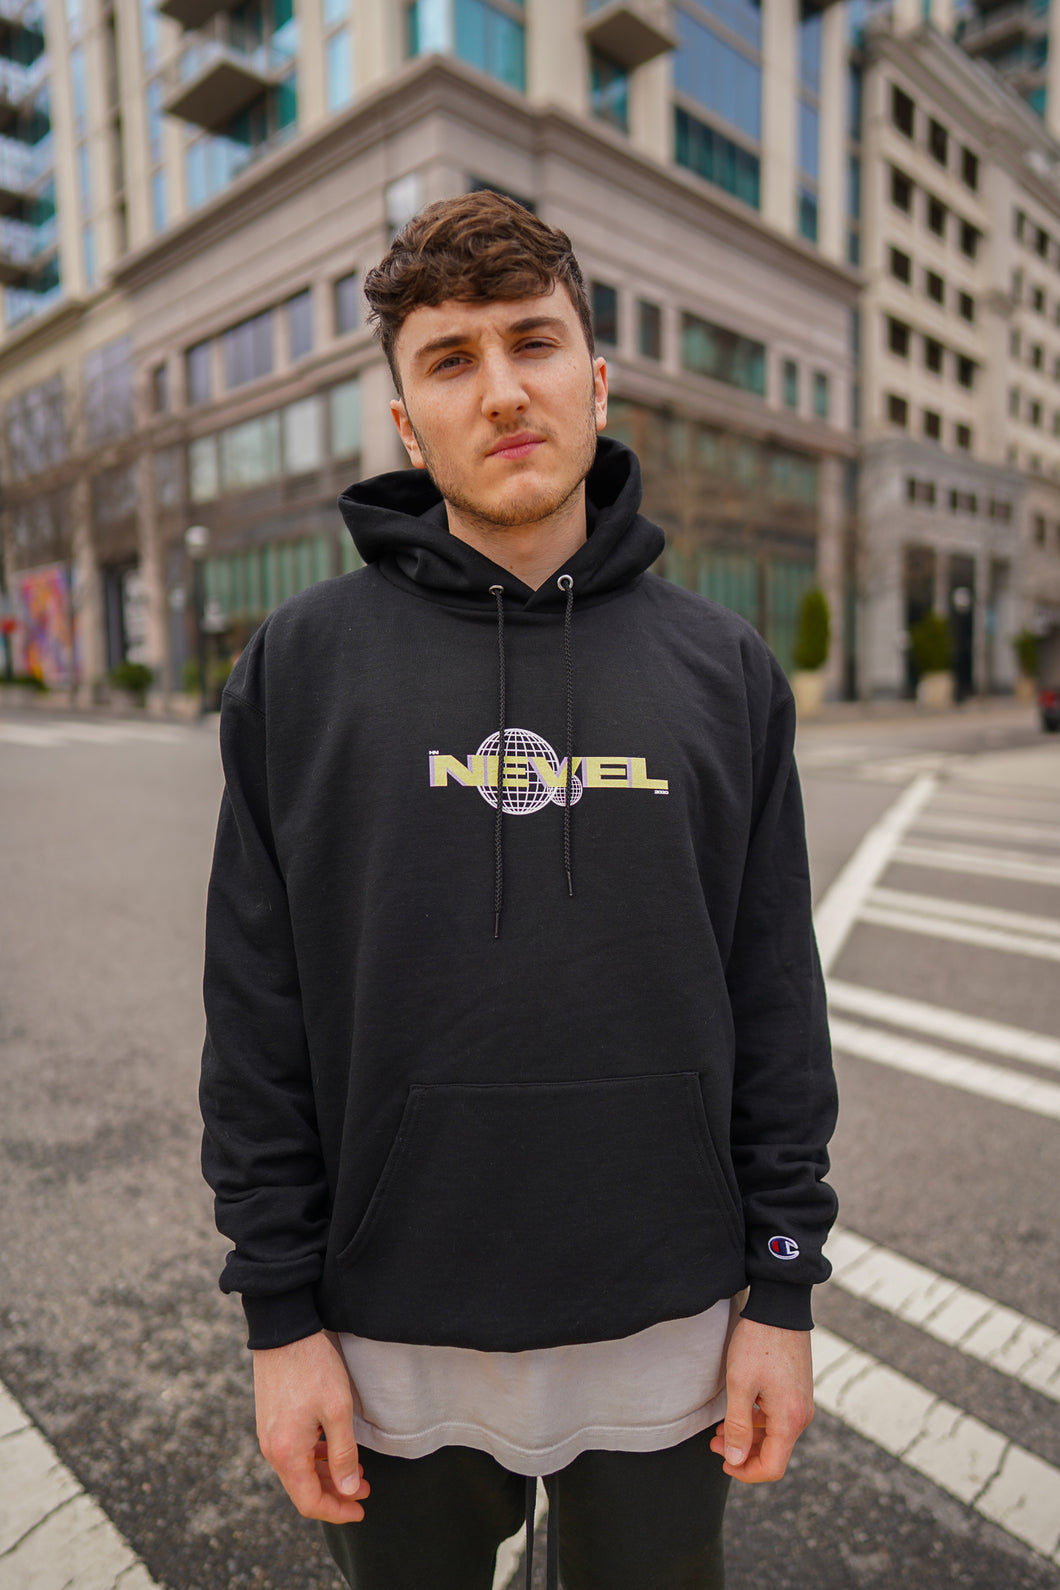 Harrison Nevel Champion hoodie